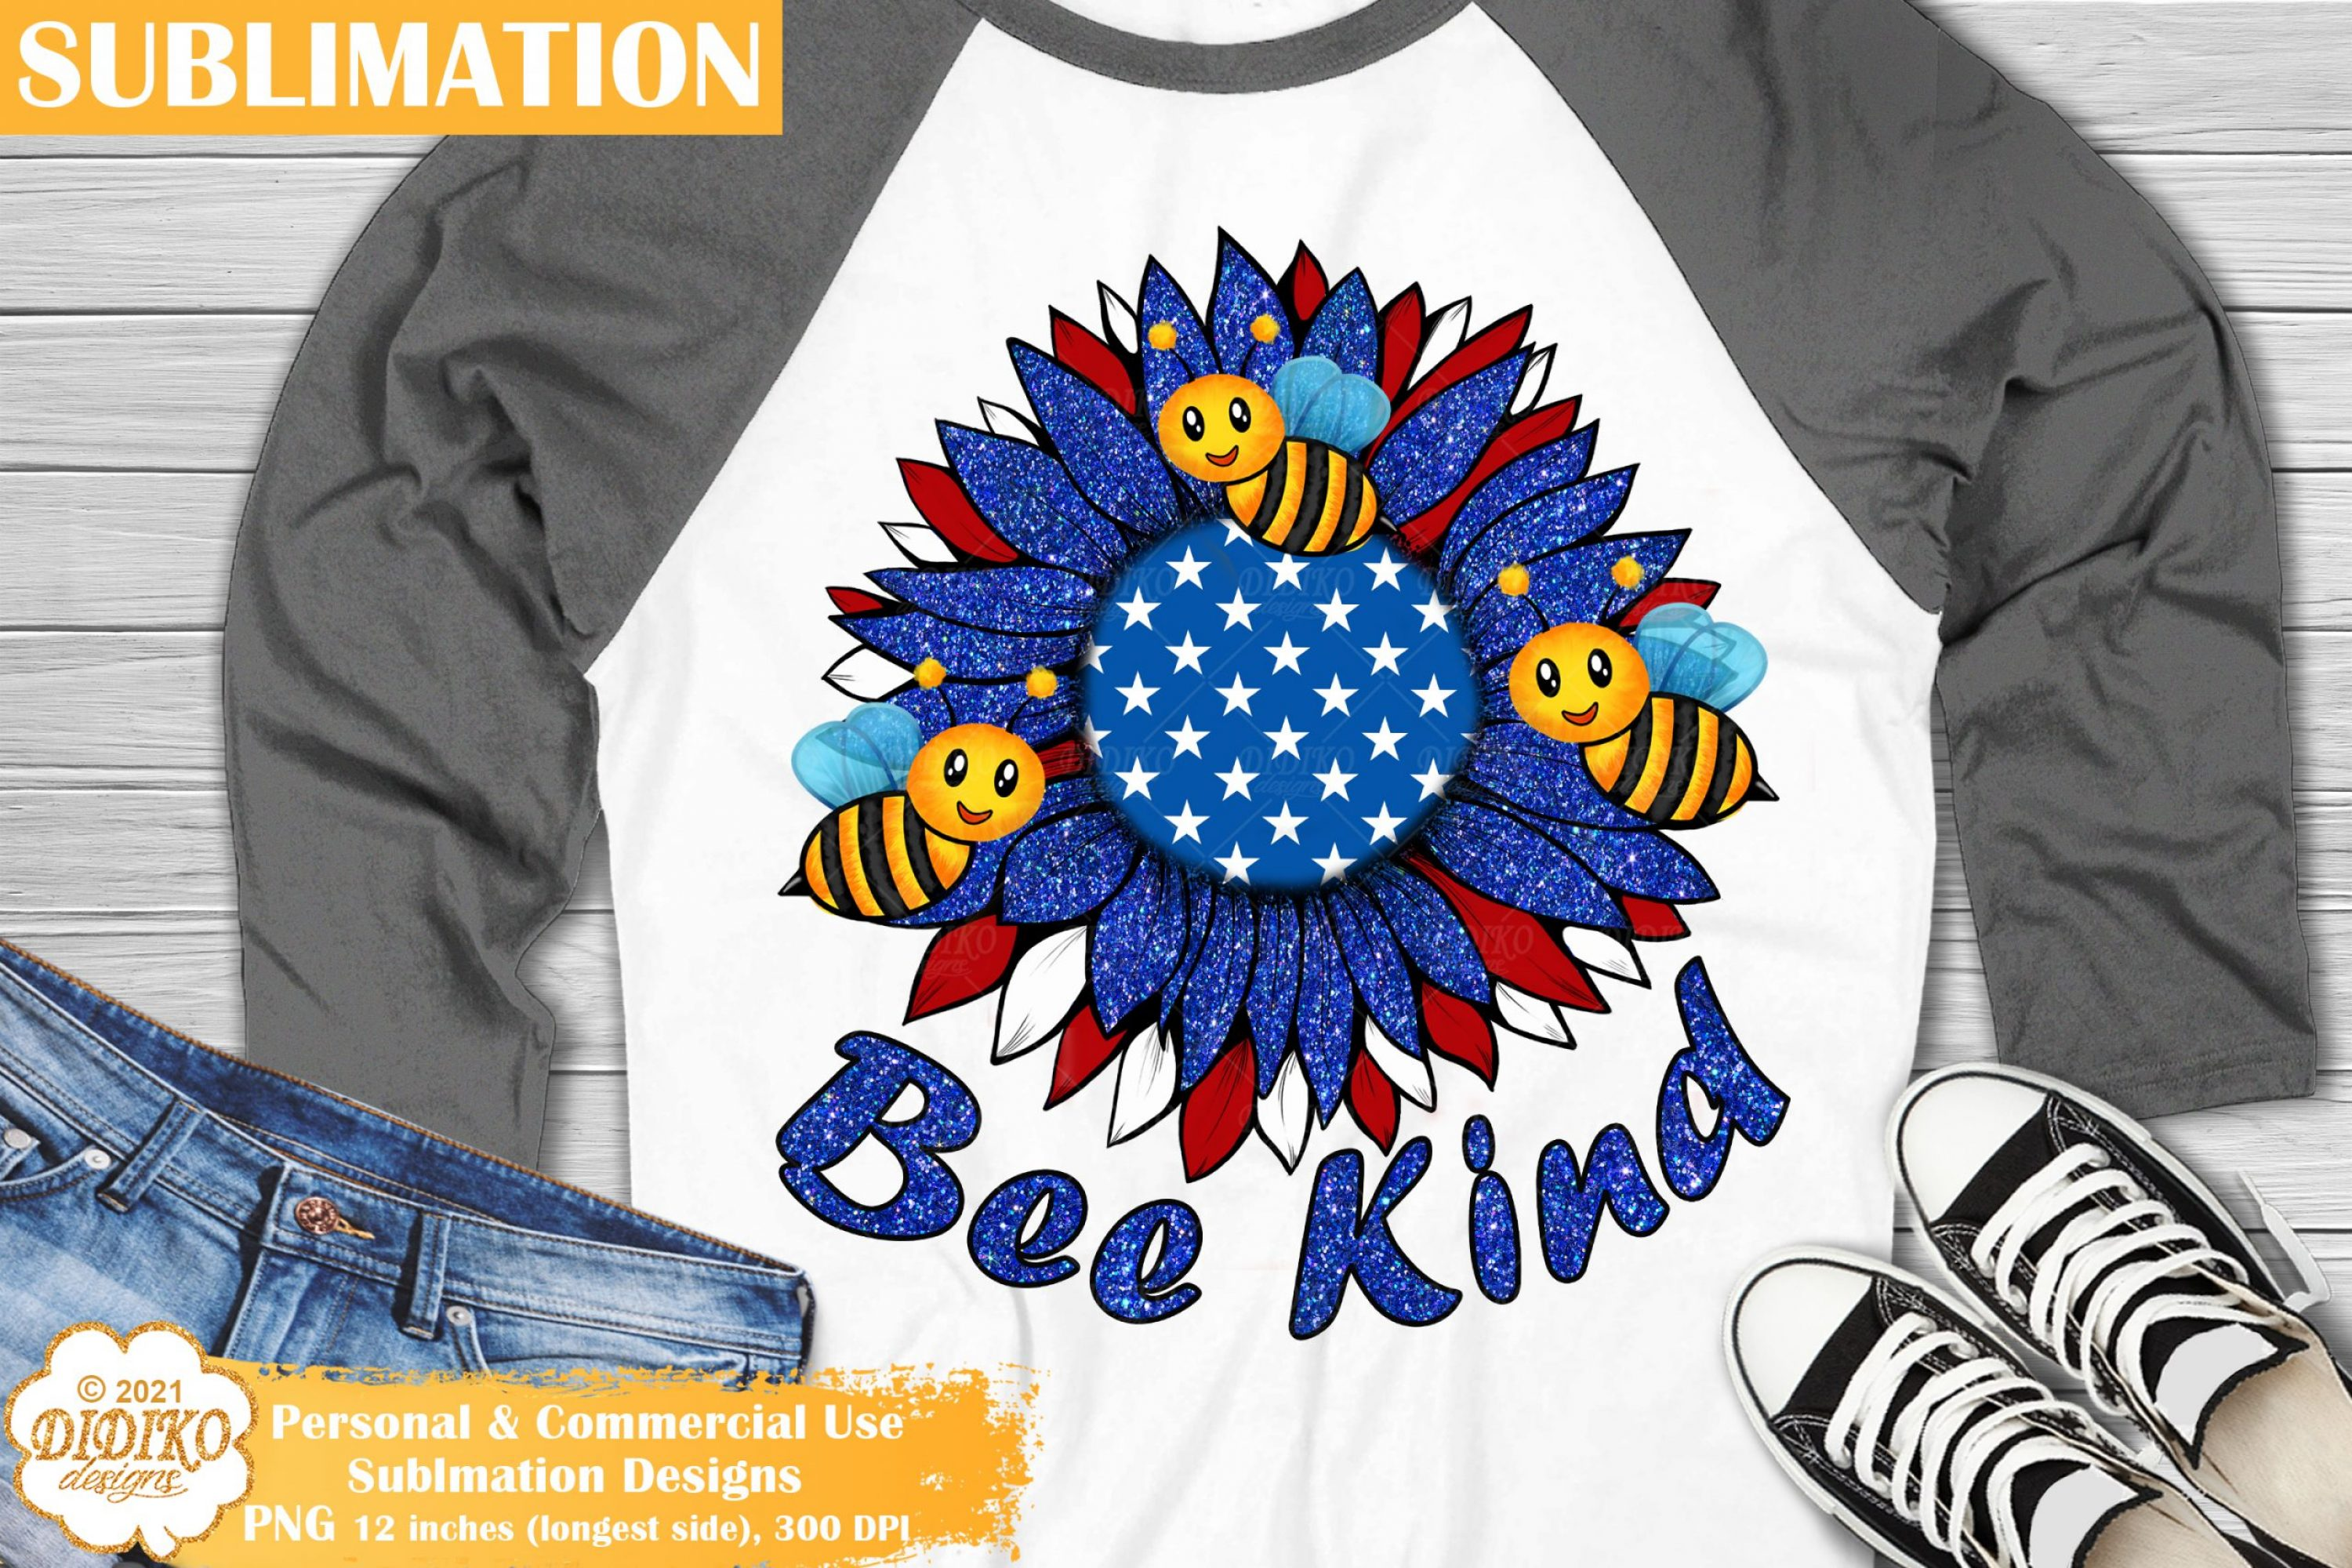 Be Kind Sublimation, Bee Png, 4th of July Sunflower Png